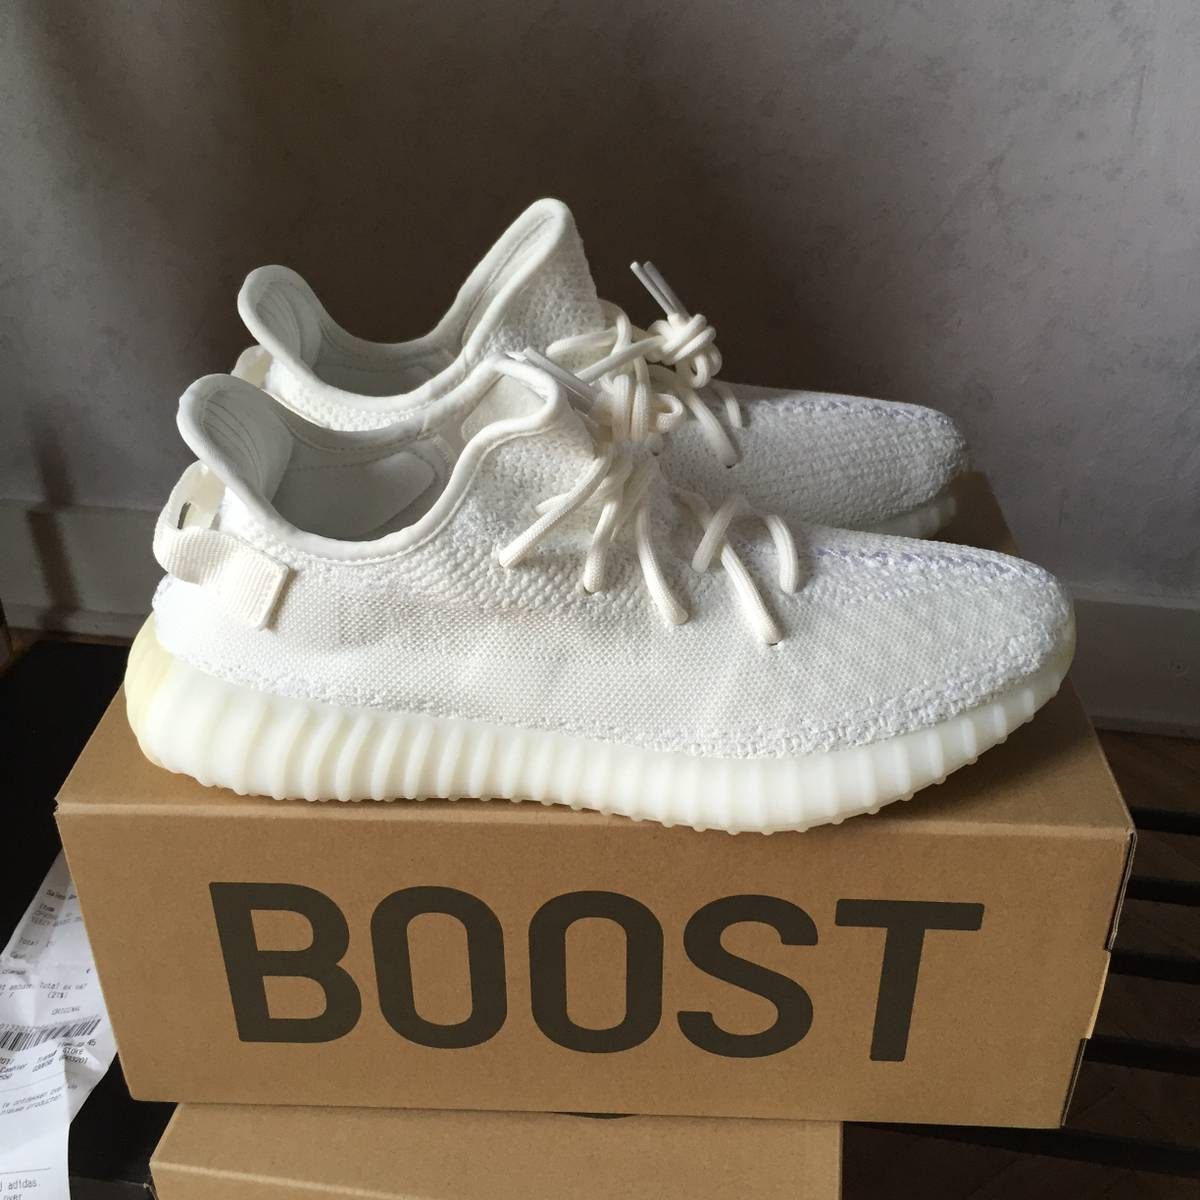 2017 Yeezy boost 350 v2 white red price uk Size 7 Stores